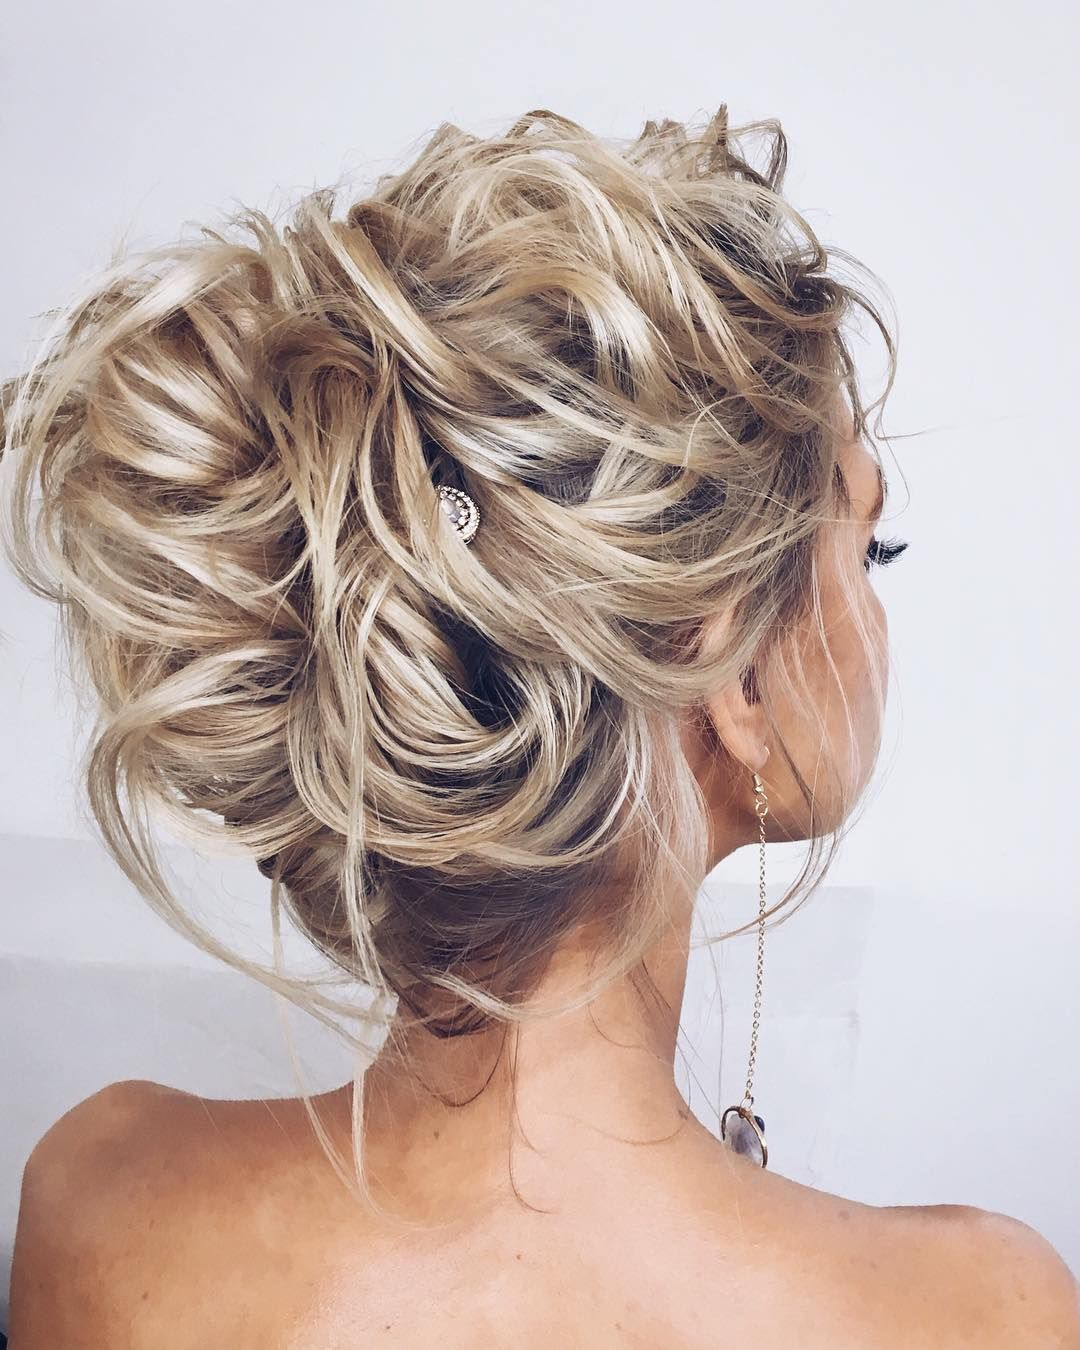 87 Fabulous Wedding Hairstyles For Every Wedding Dress Neckline Messy Hairstyles Strapless Dress Hairstyles Bride Hairstyles